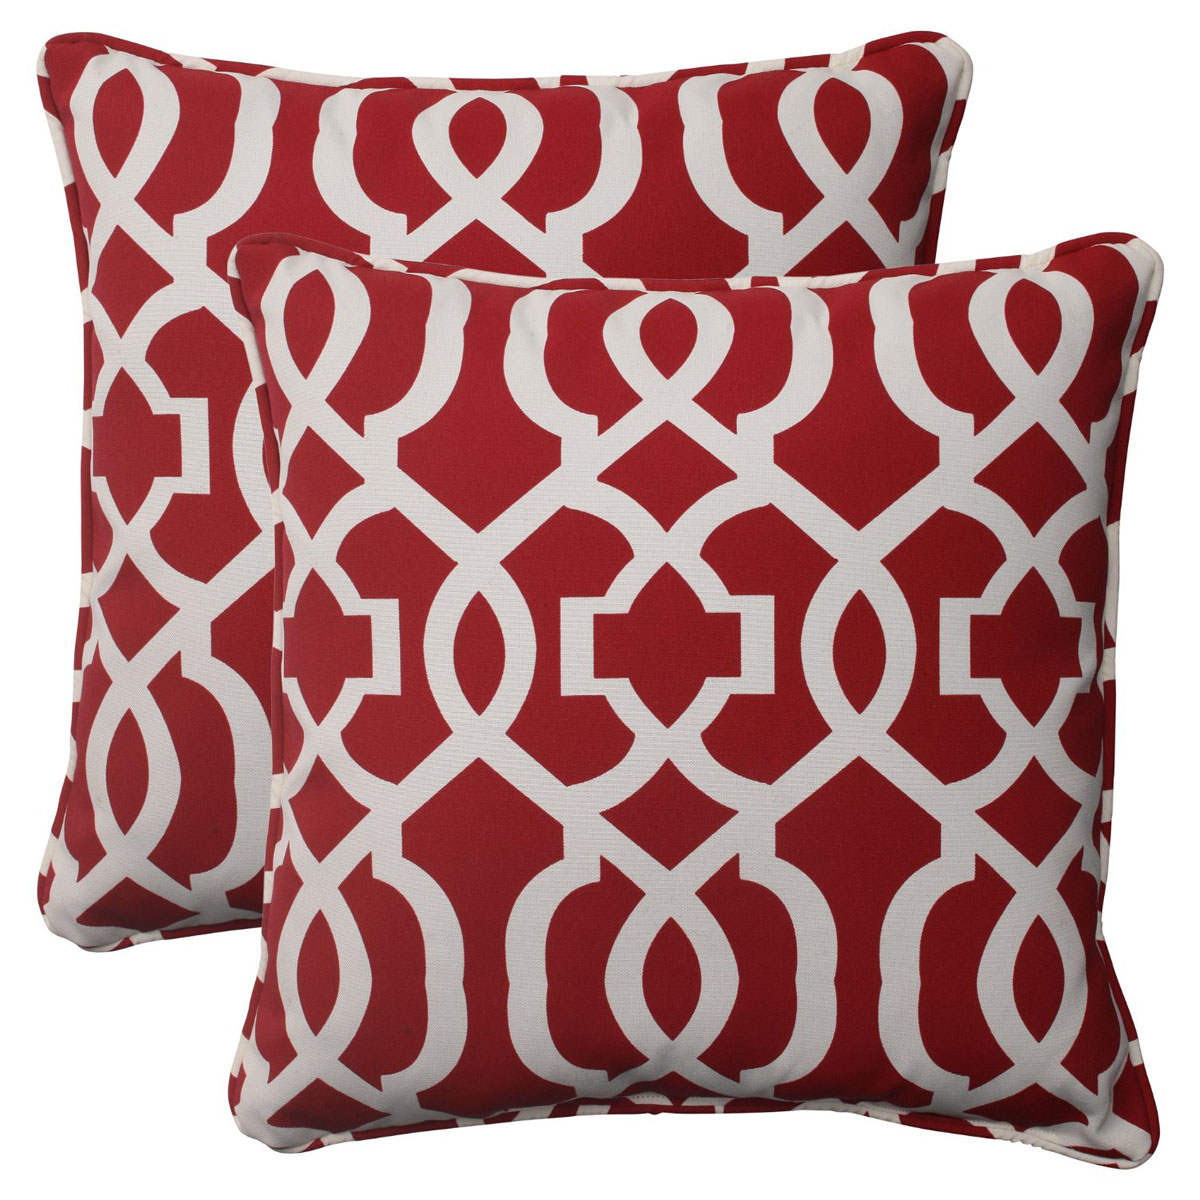 Red Decorative Pillows Throw For Couch